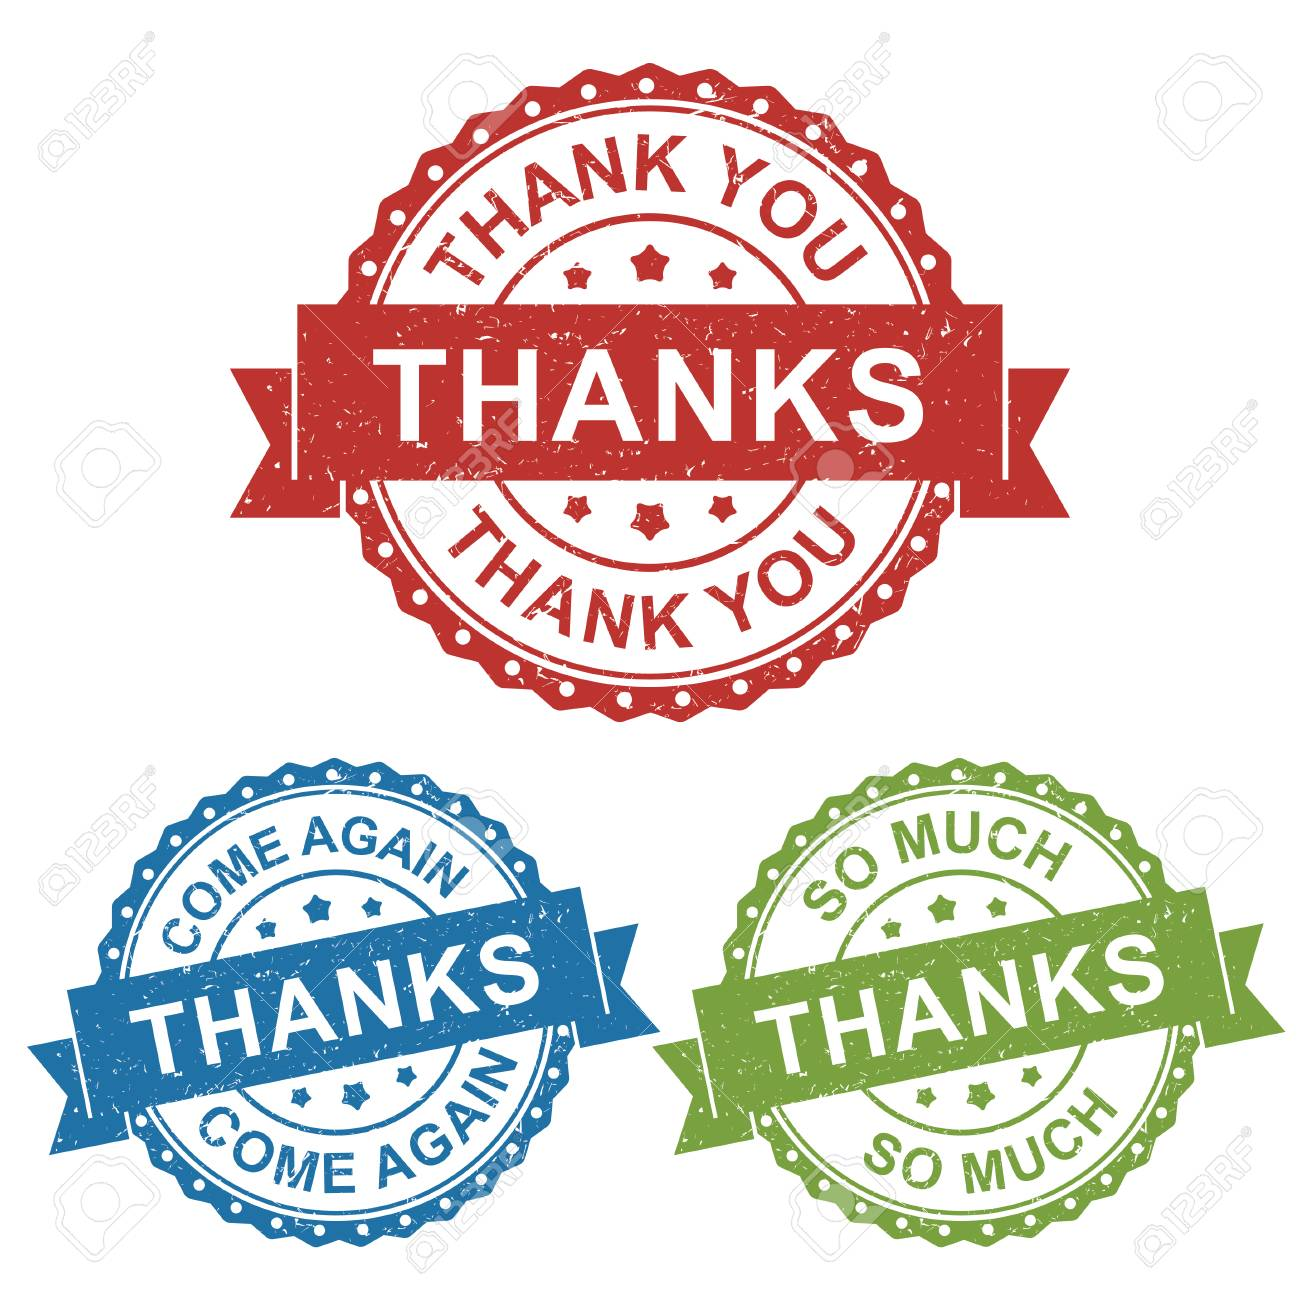 Thanks Thank You Come Again Vector Badge Label Stamp Tag For Royalty Free Cliparts Vectors And Stock Illustration Image 94822242